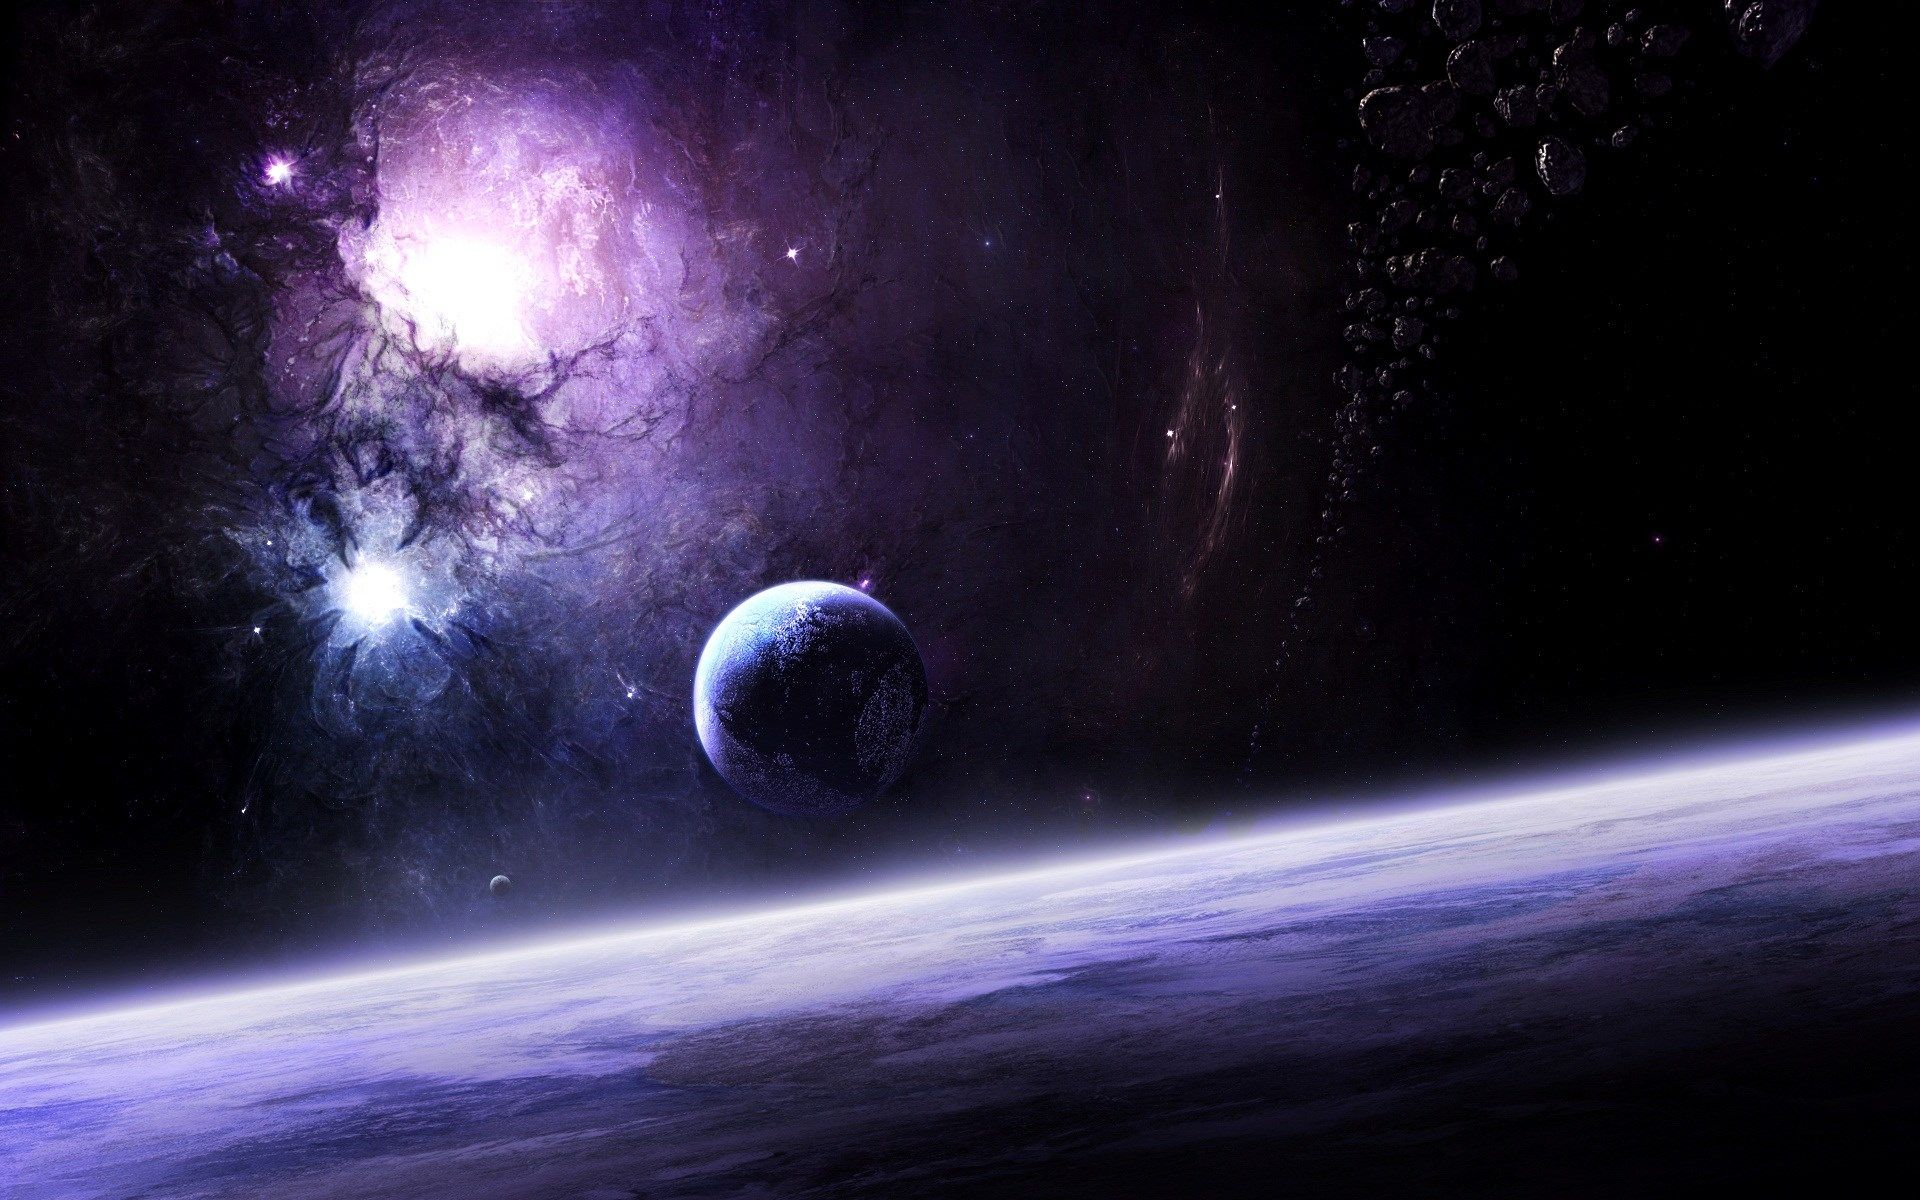 Space Hd Best Widescreen Backgrounds 1920x1200 Galaxy Wallpaper Space Backgrounds Anime Wallpaper